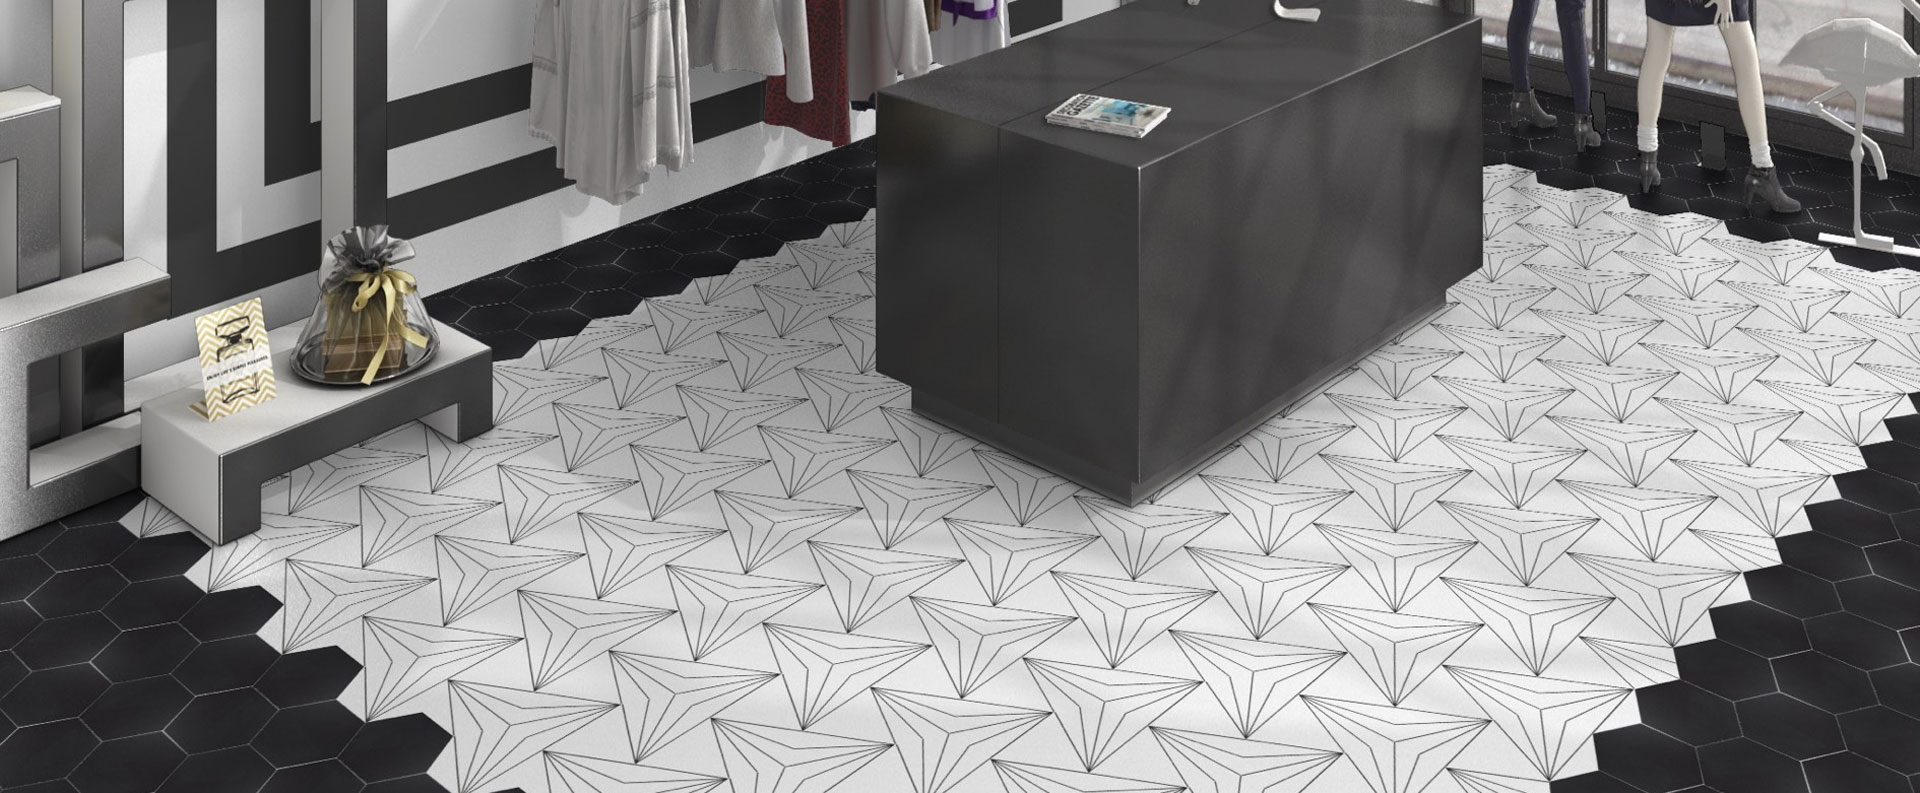 Chic shop setting showing Axis Patterned Hexagon tiles